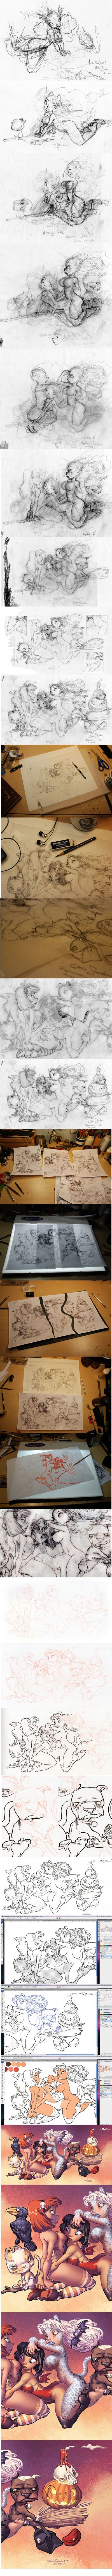 Chris Sanders sketch process ✤ || CHARACTER DESIGN REFERENCES | キャラクターデザイン • Find more at https://www.facebook.com/CharacterDesignReferences if you're looking for: #lineart #art #character #design #illustration #expressions #best #animation #drawing #archive #library #reference #anatomy #traditional #sketch #artist #pose #settei #gestures #how #to #tutorial #comics #conceptart #modelsheet #cartoon #arttutorials #tips #textures #lesson || ✤